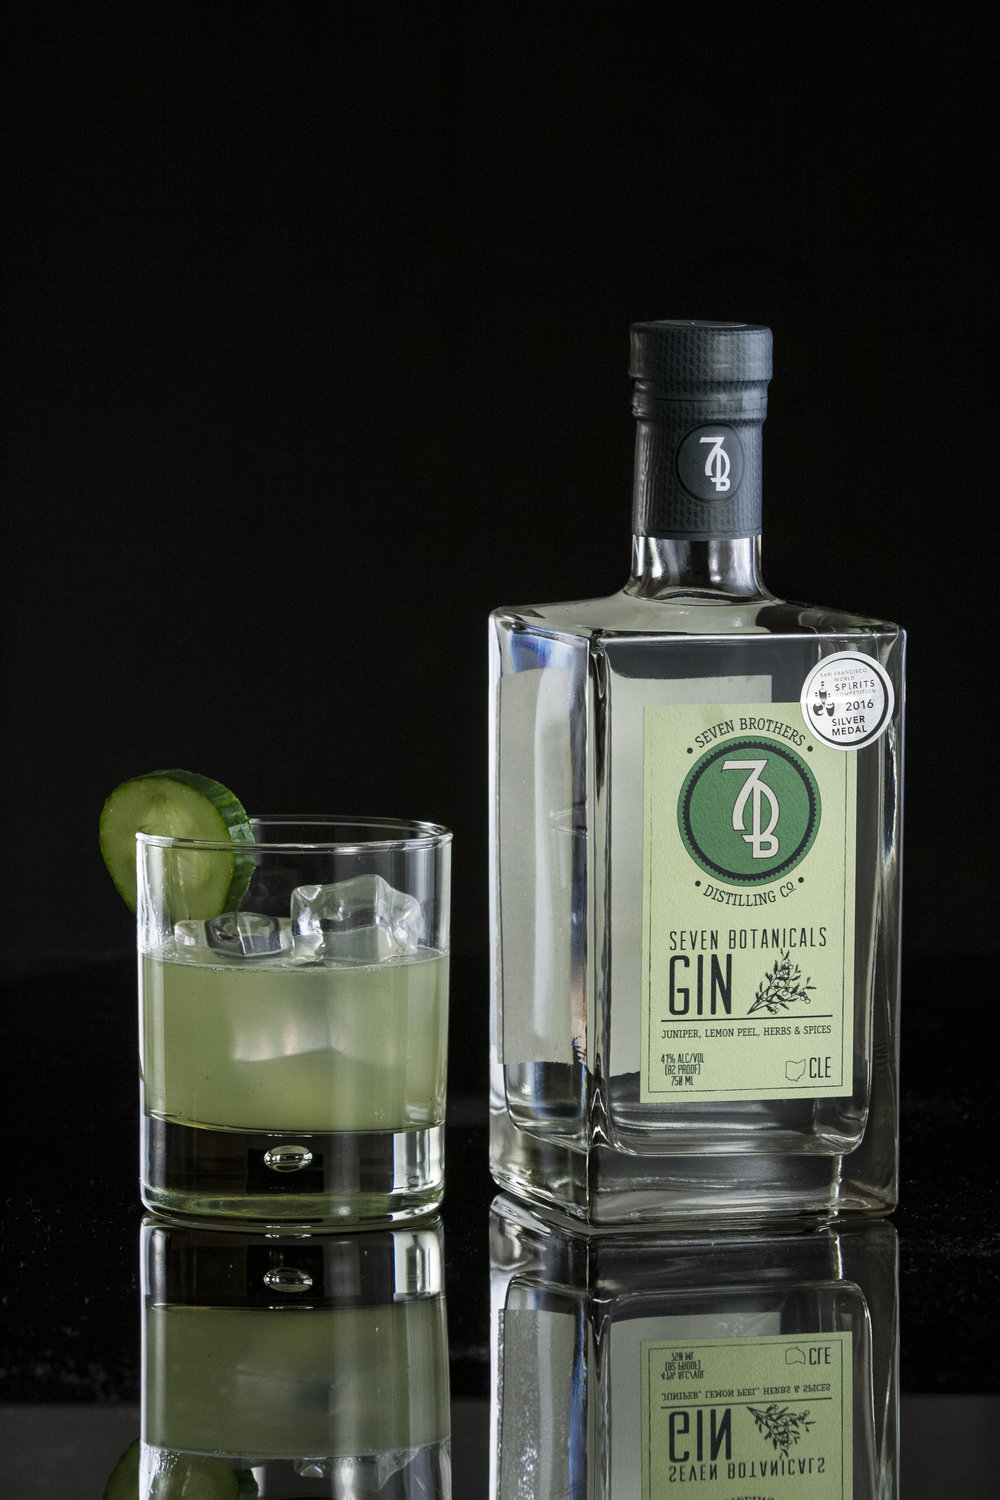 CLE GARDEN GIN - 1.5 oz Seven Brothers Seven Botanicals Gin1.25 oz Lemon Juice.5 oz Simple Syrup2 slices Cucumber4 Mint LeavesMuddle mint leaves and cucumber in a shaker. Combine remaining ingredients and shake over ice. Strain into a Rocks glass and garnish with a cucumber wheel.